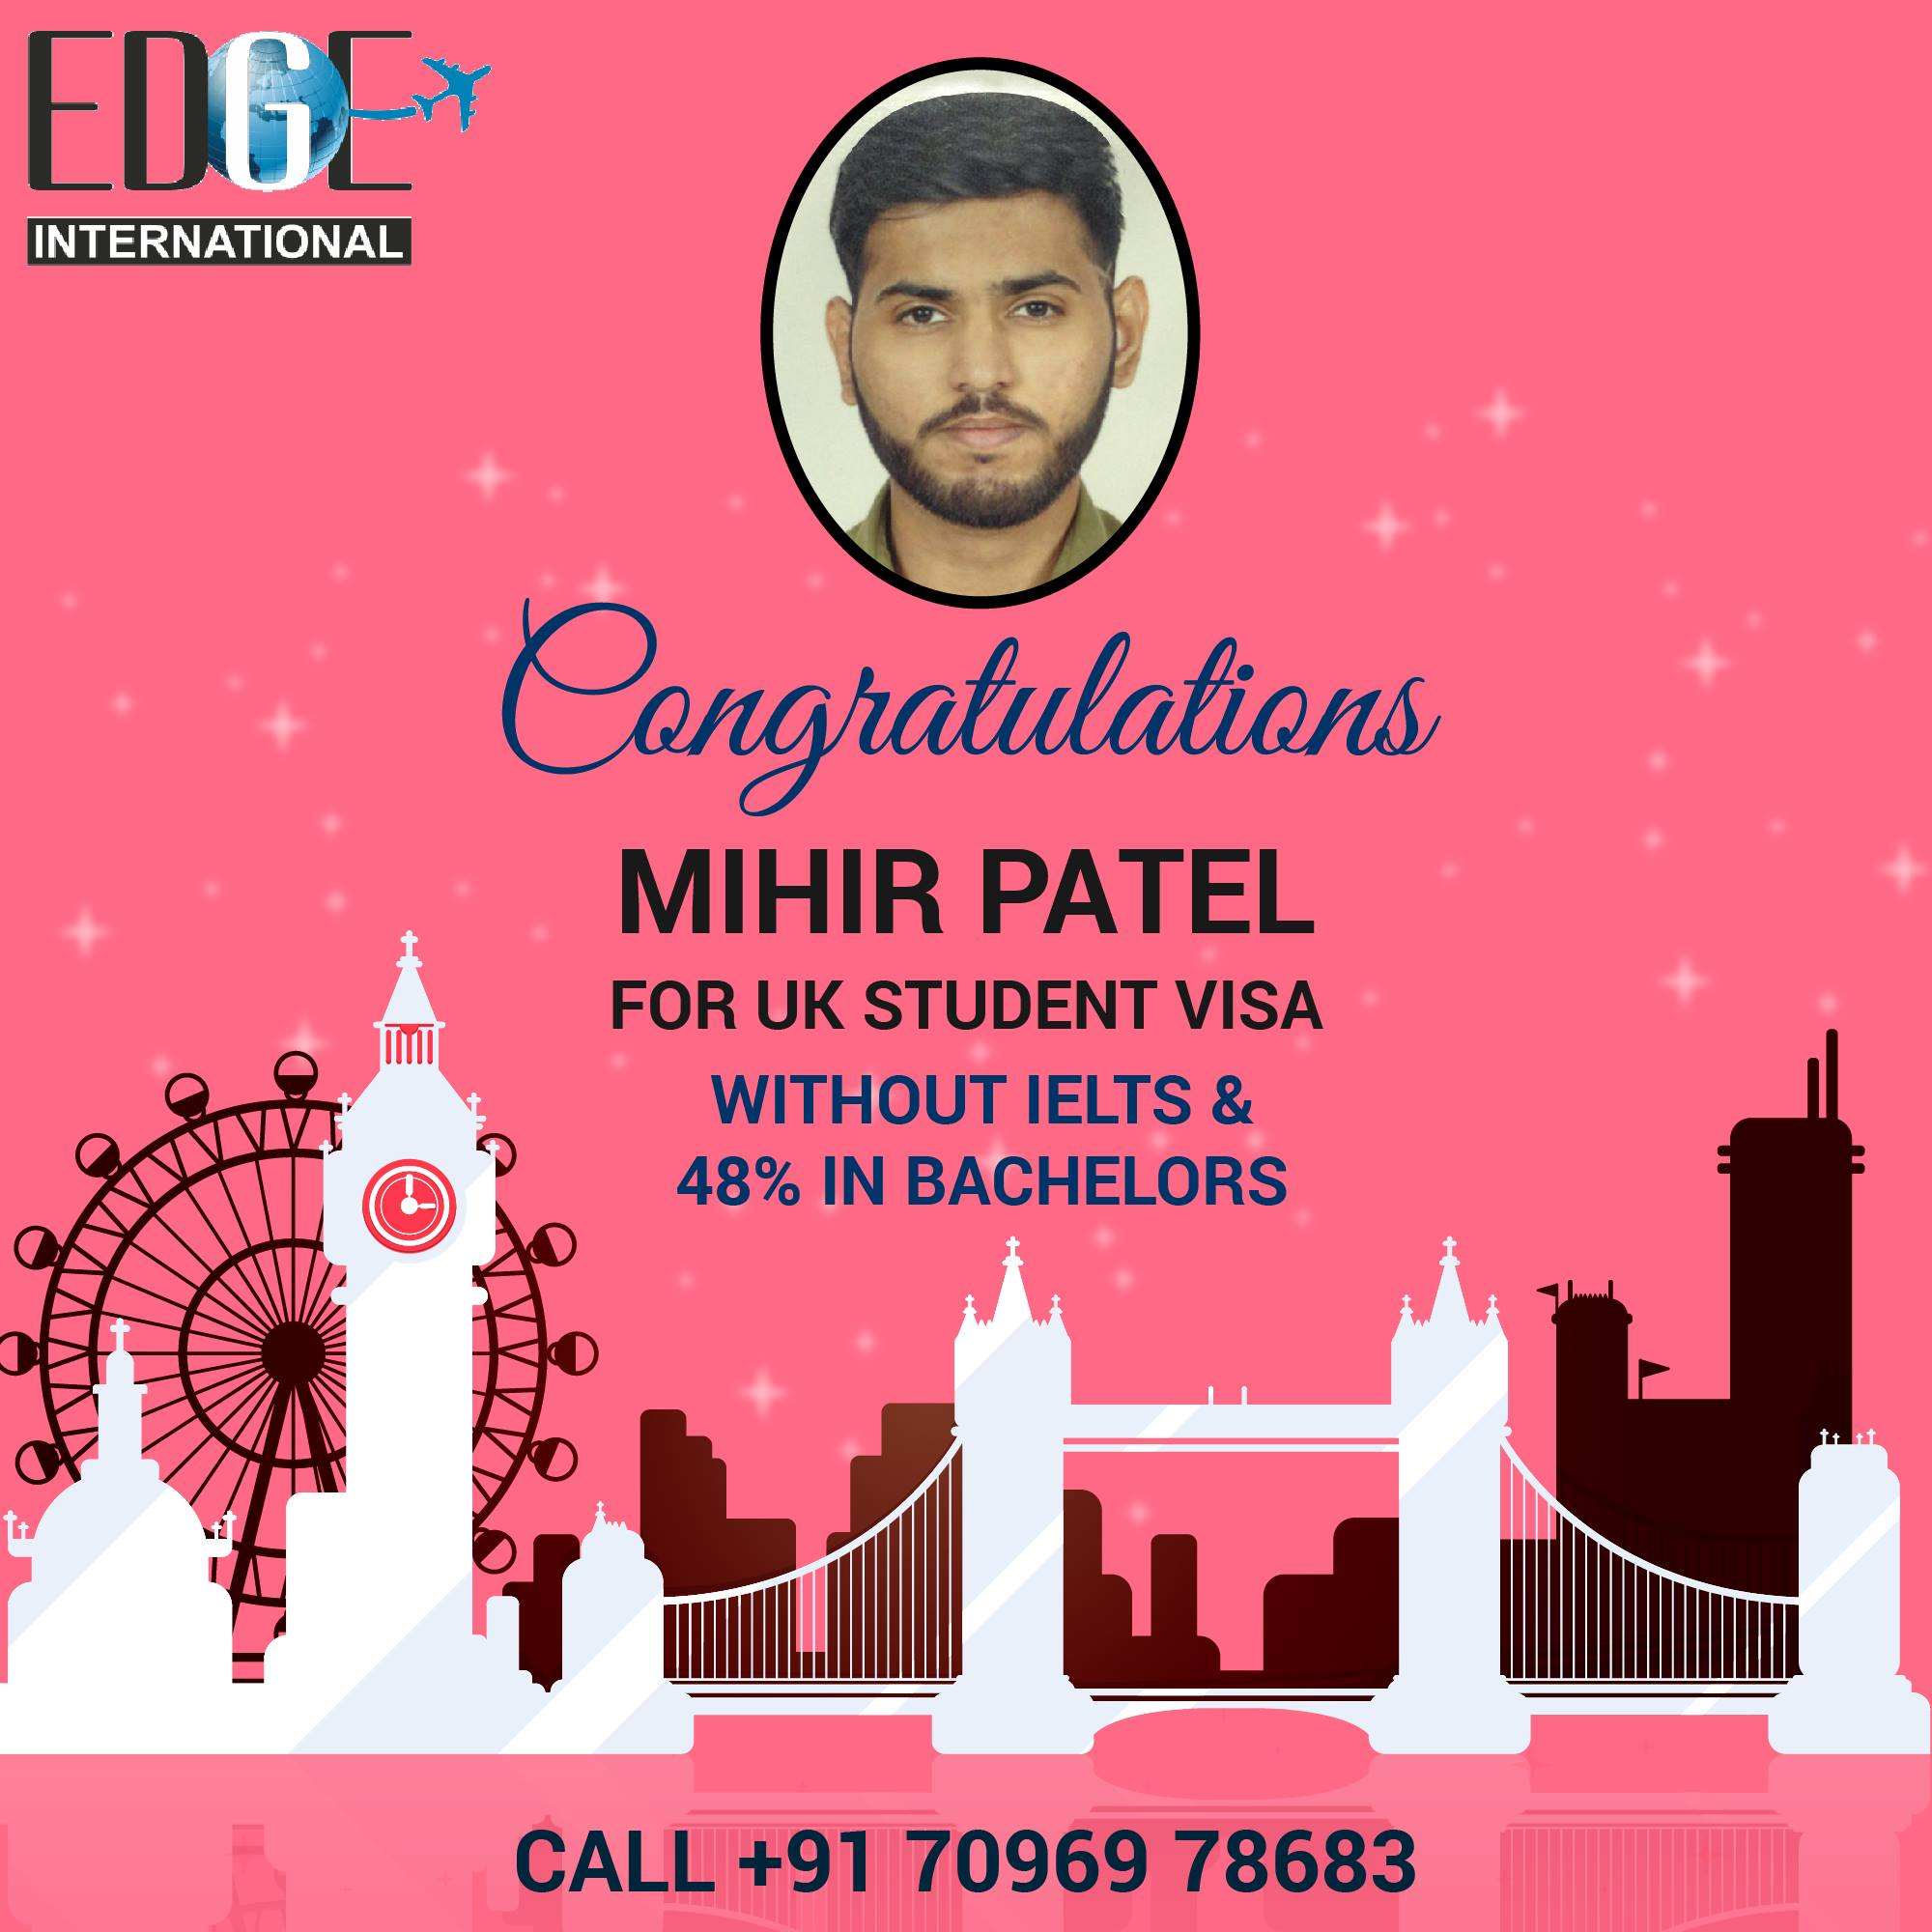 Many Many Hearty congratulations to Mihir Patel on getting